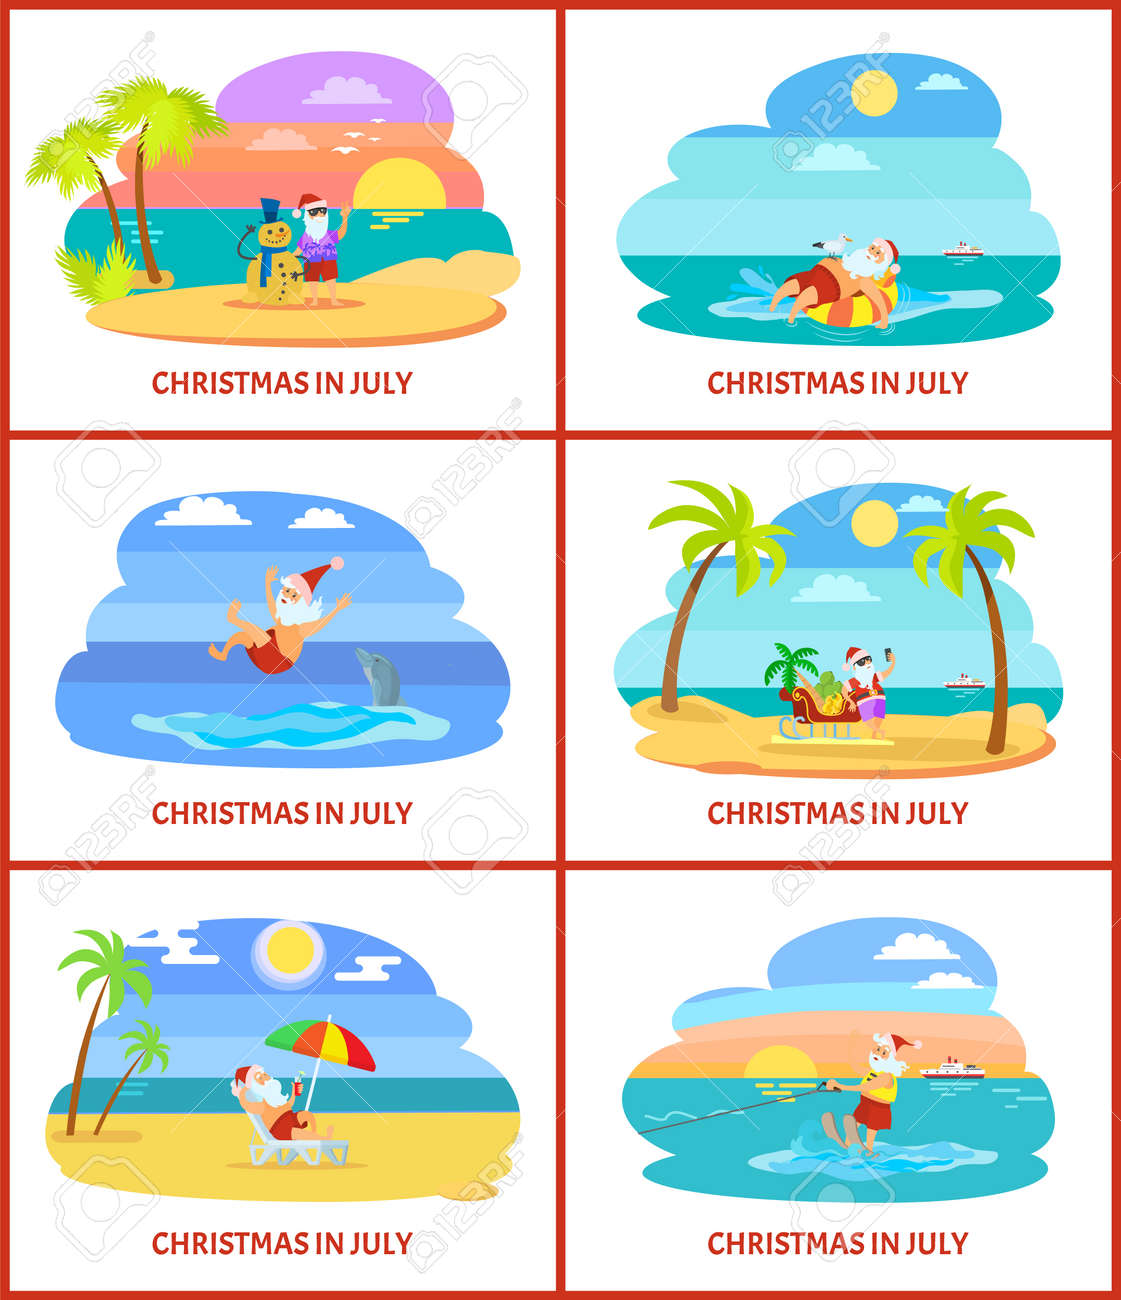 Christmas In July Santa Clipart.Christmas In July Santa Claus With Snowman Made Of Sand Vector